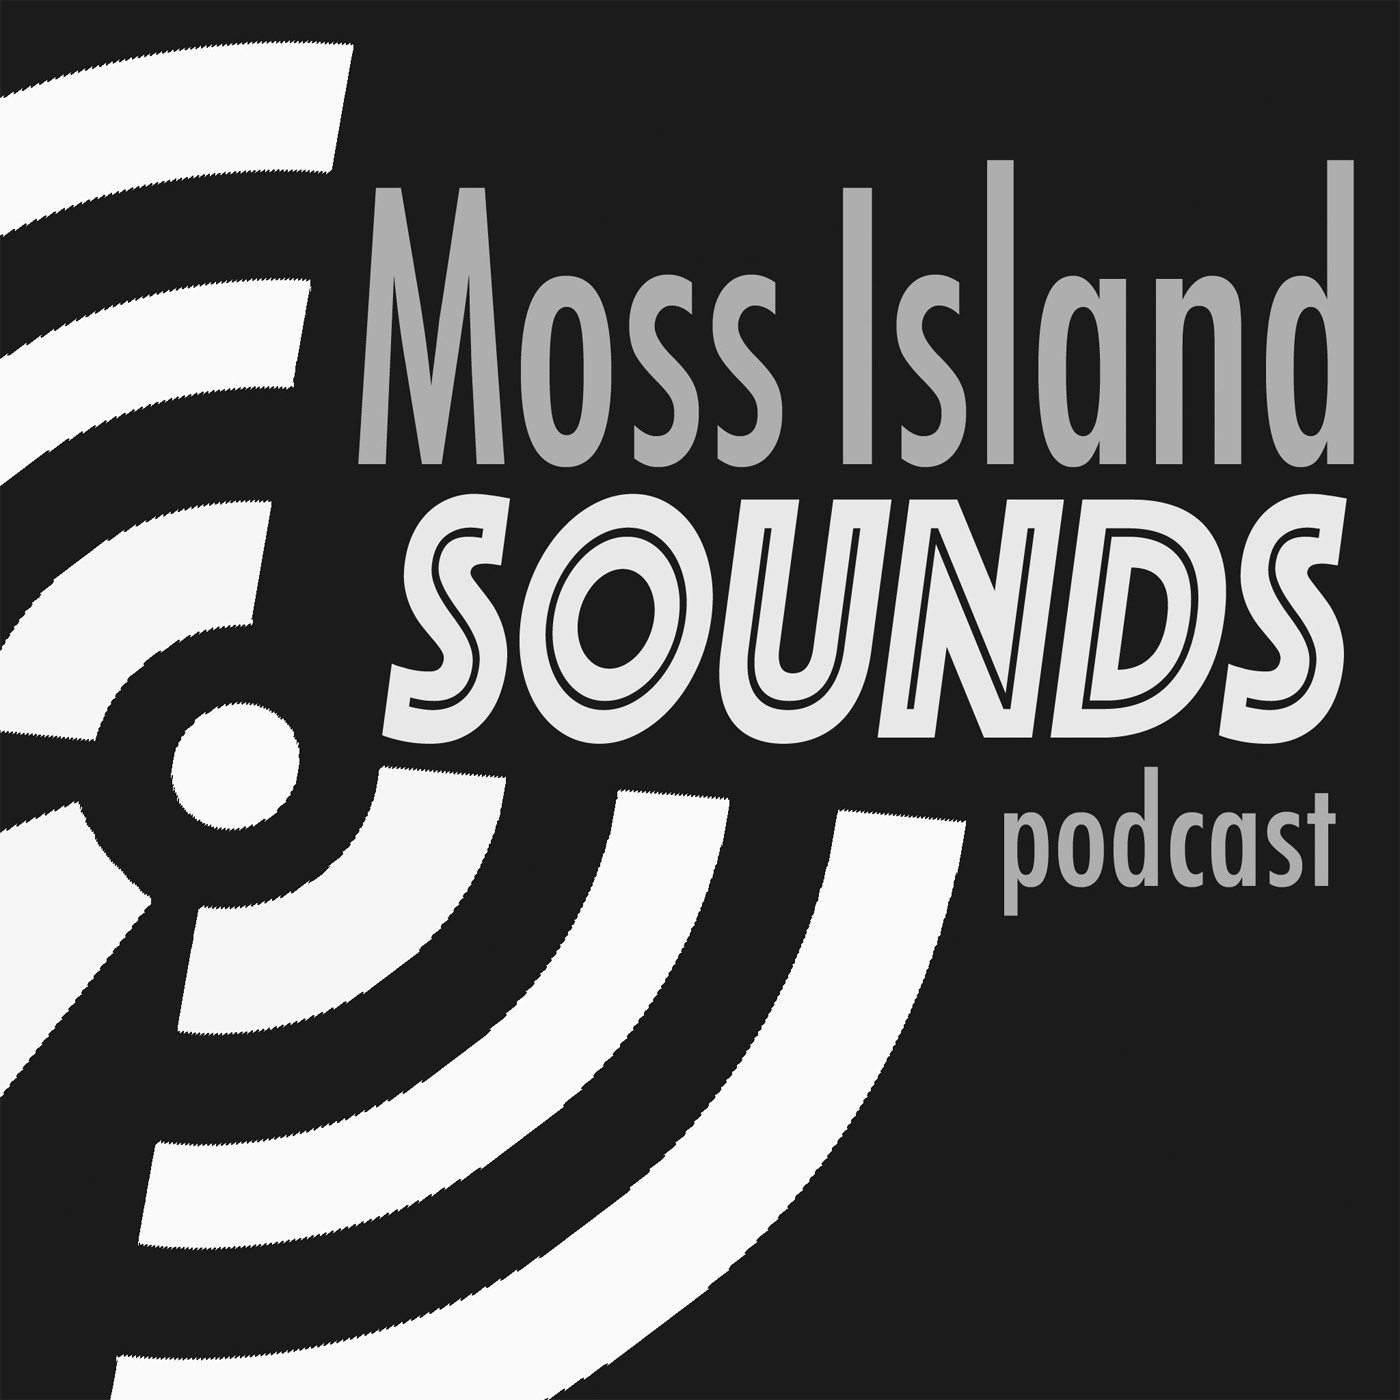 Podcasts – Moss Island Sounds